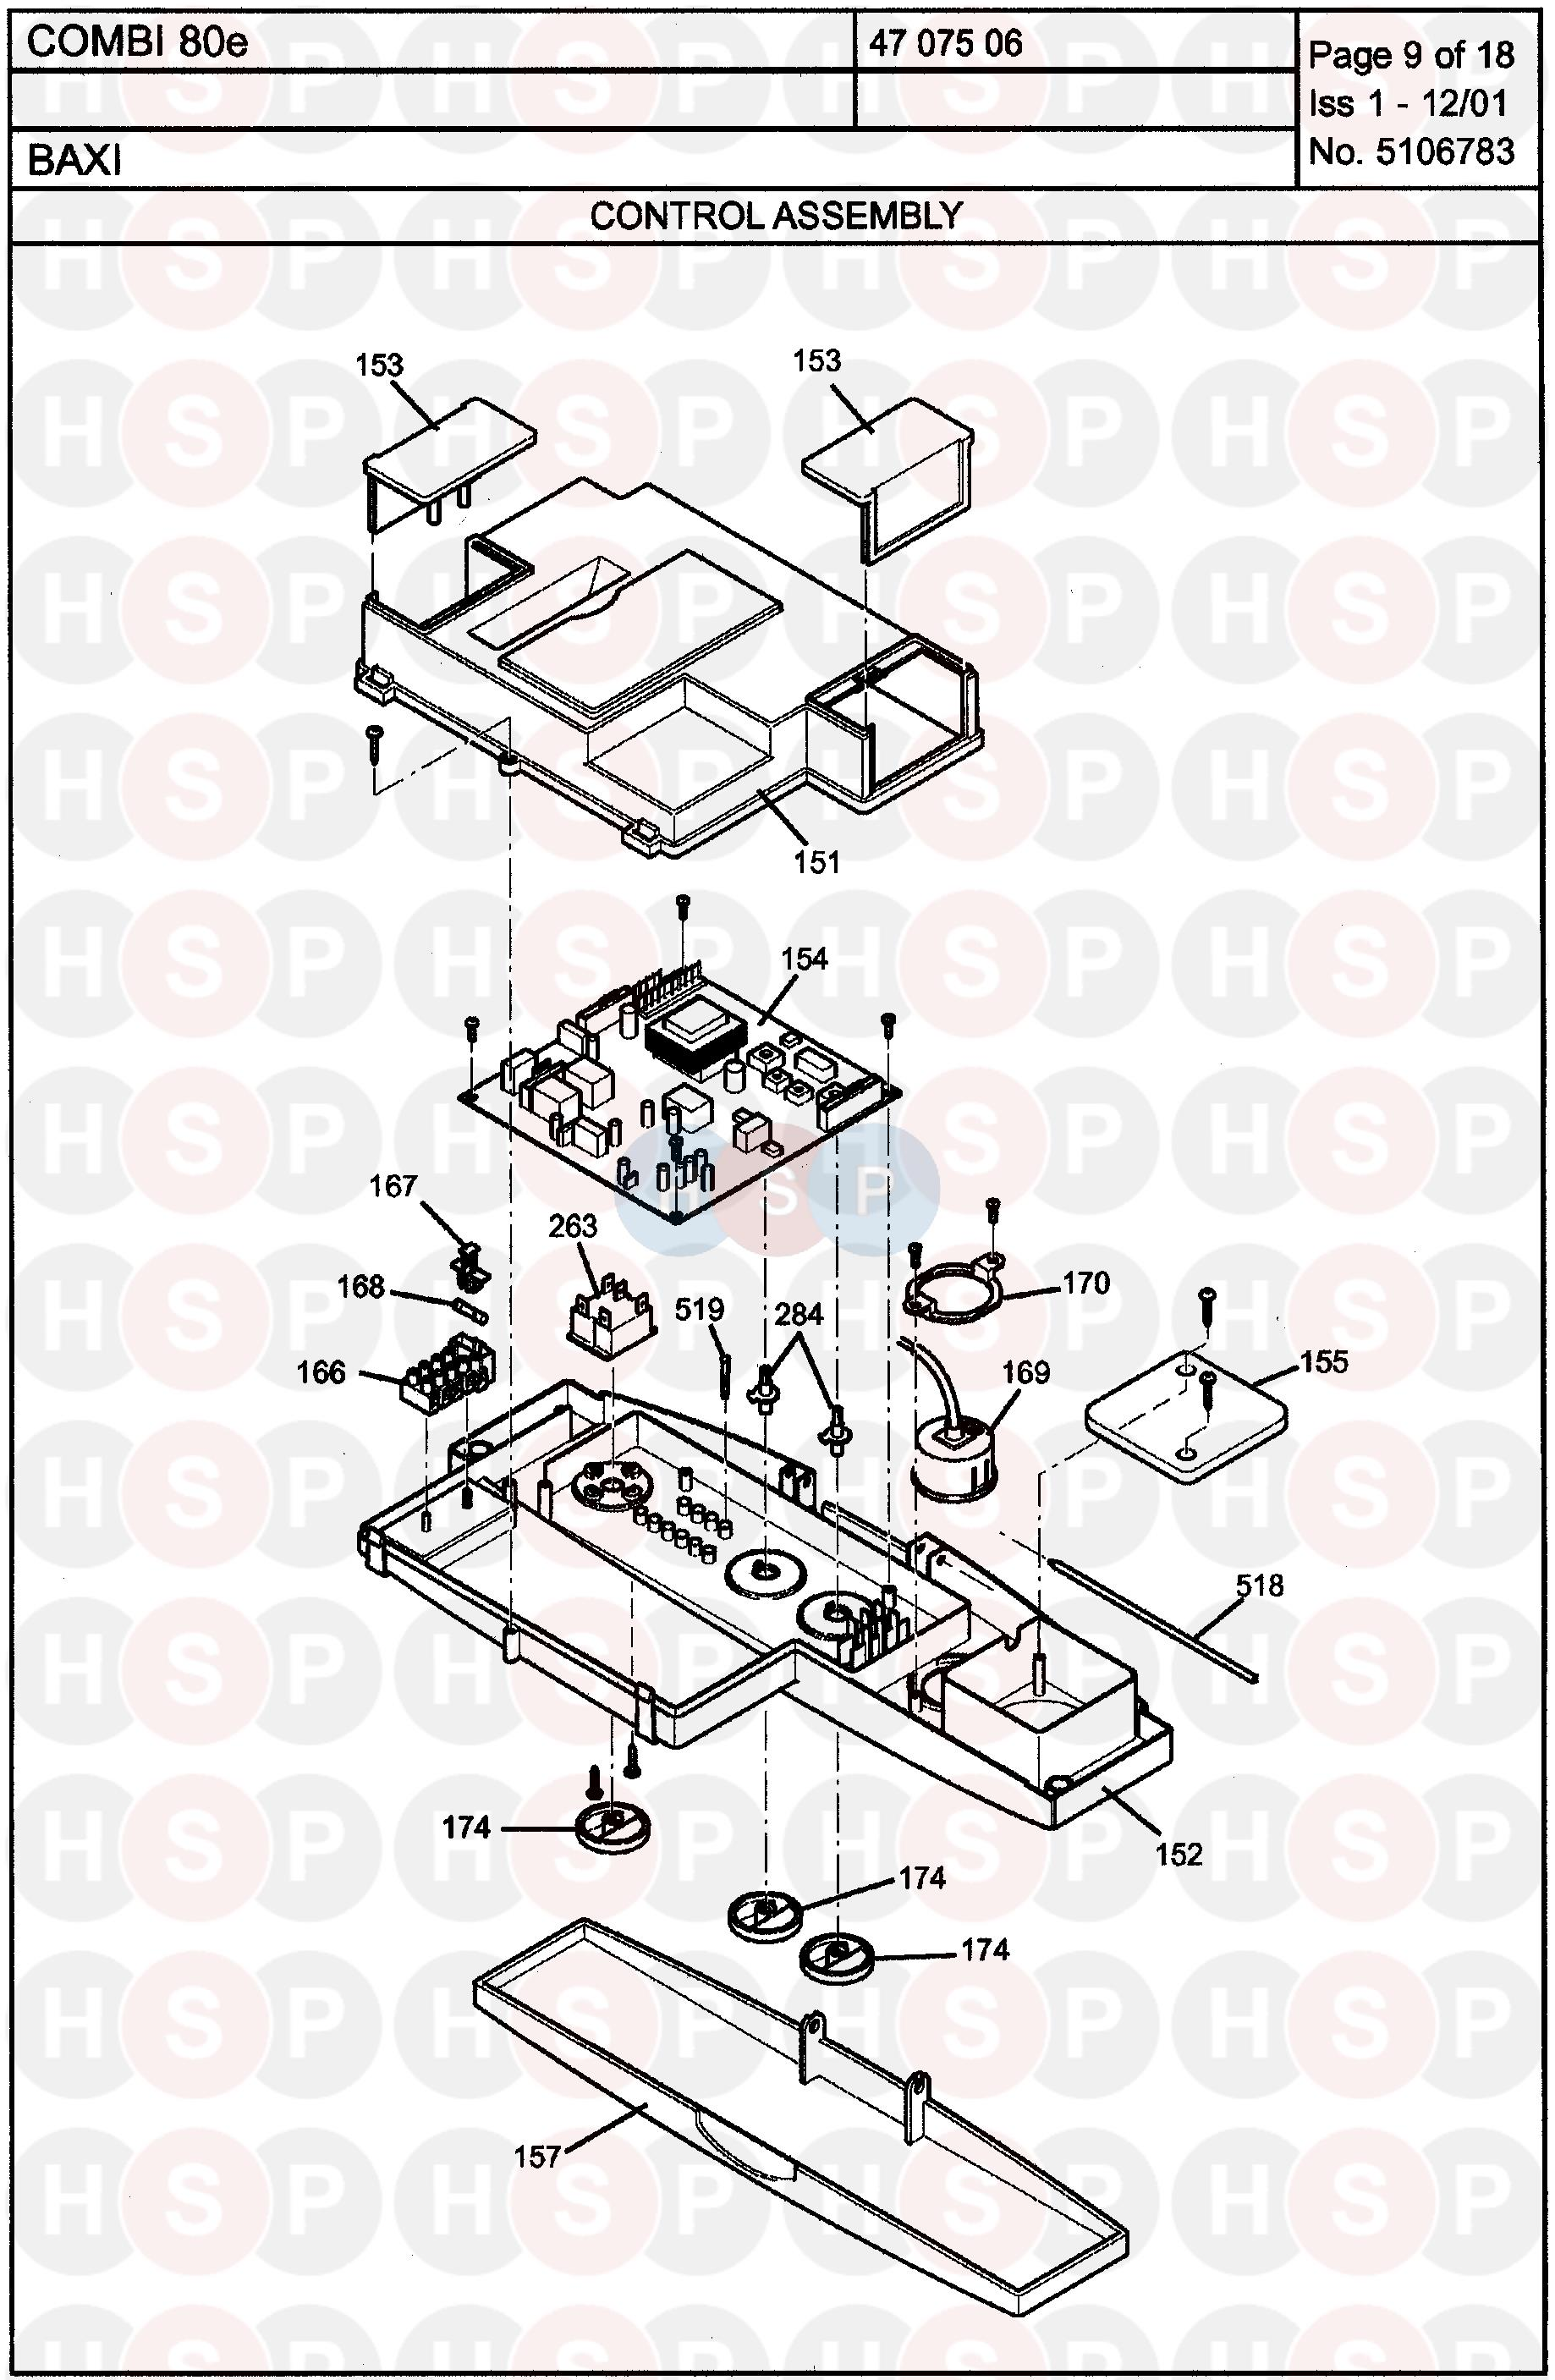 Baxi COMBI 80E Appliance Diagram (Control Assembly